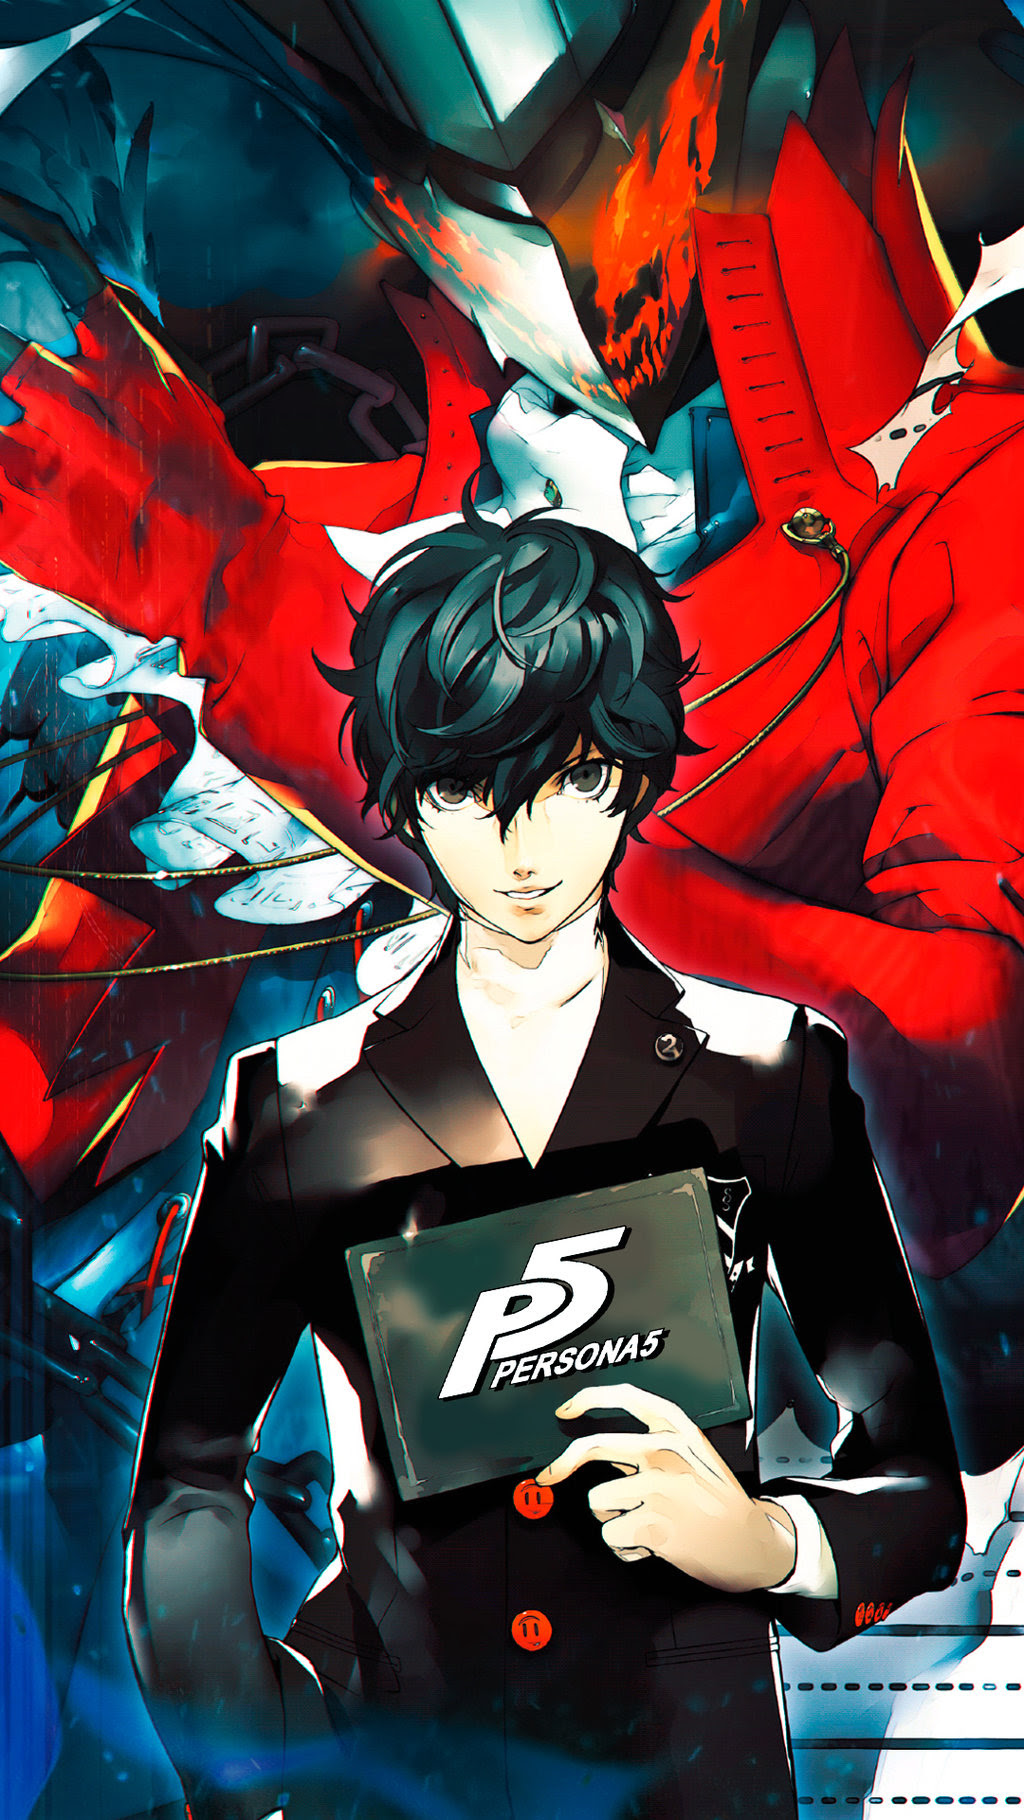 Anyone got iphone wallpapers? : Persona5